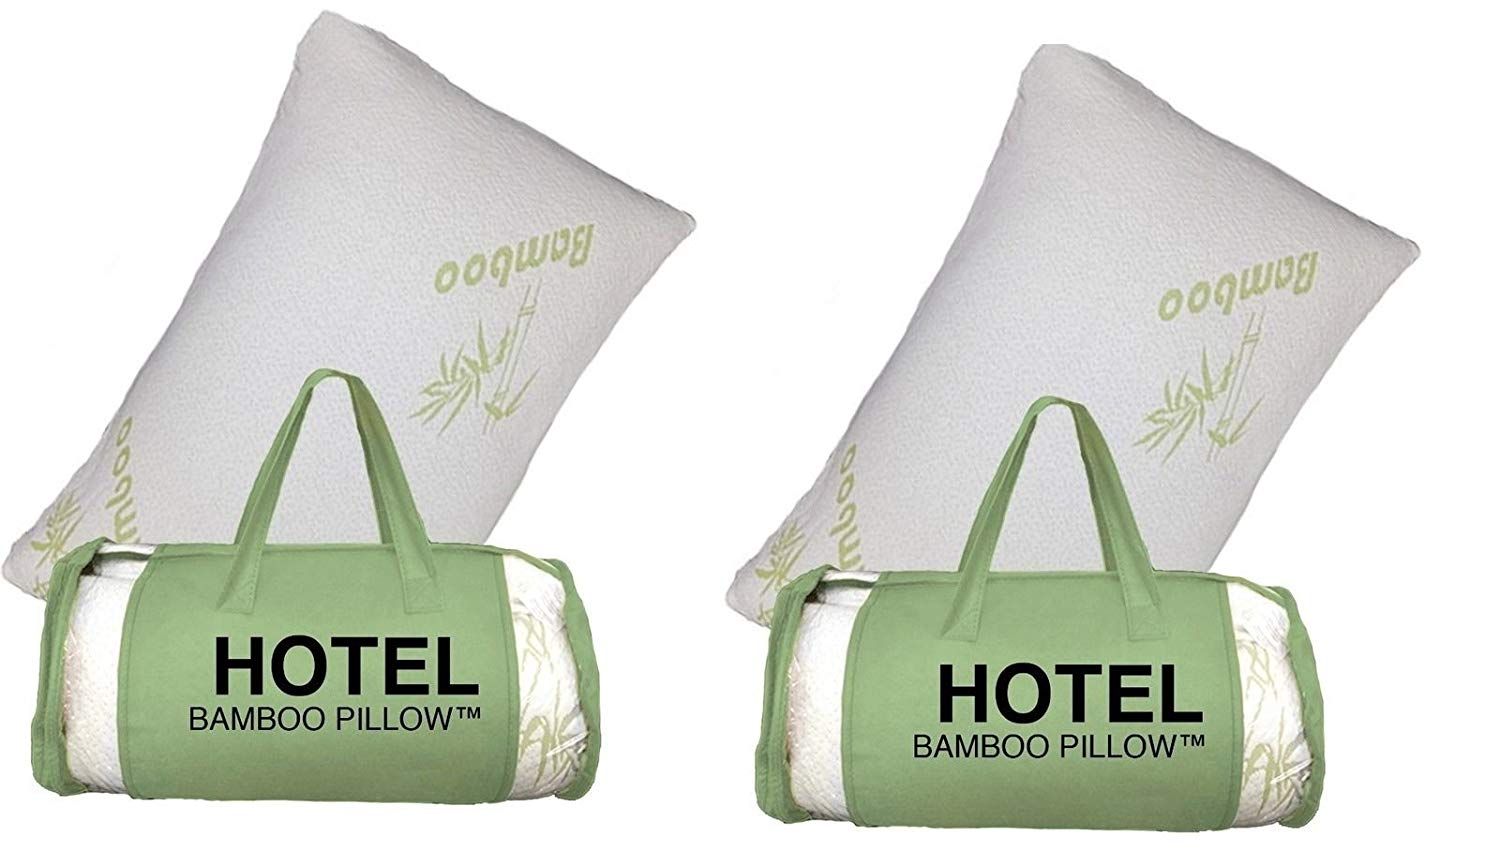 2 PACK King Hotel Bamboo Pillow Memory Foam Hypoallergenic Cool Comfort Bag